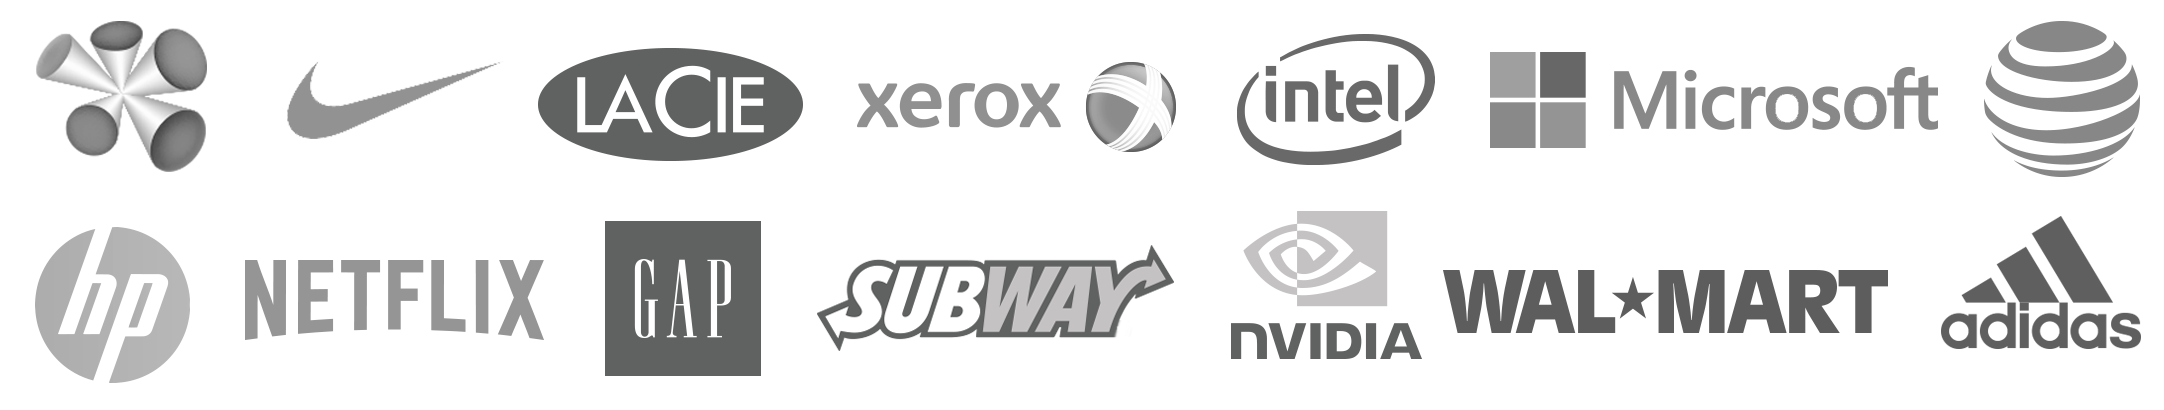 ClientLogos_SERS_04.png